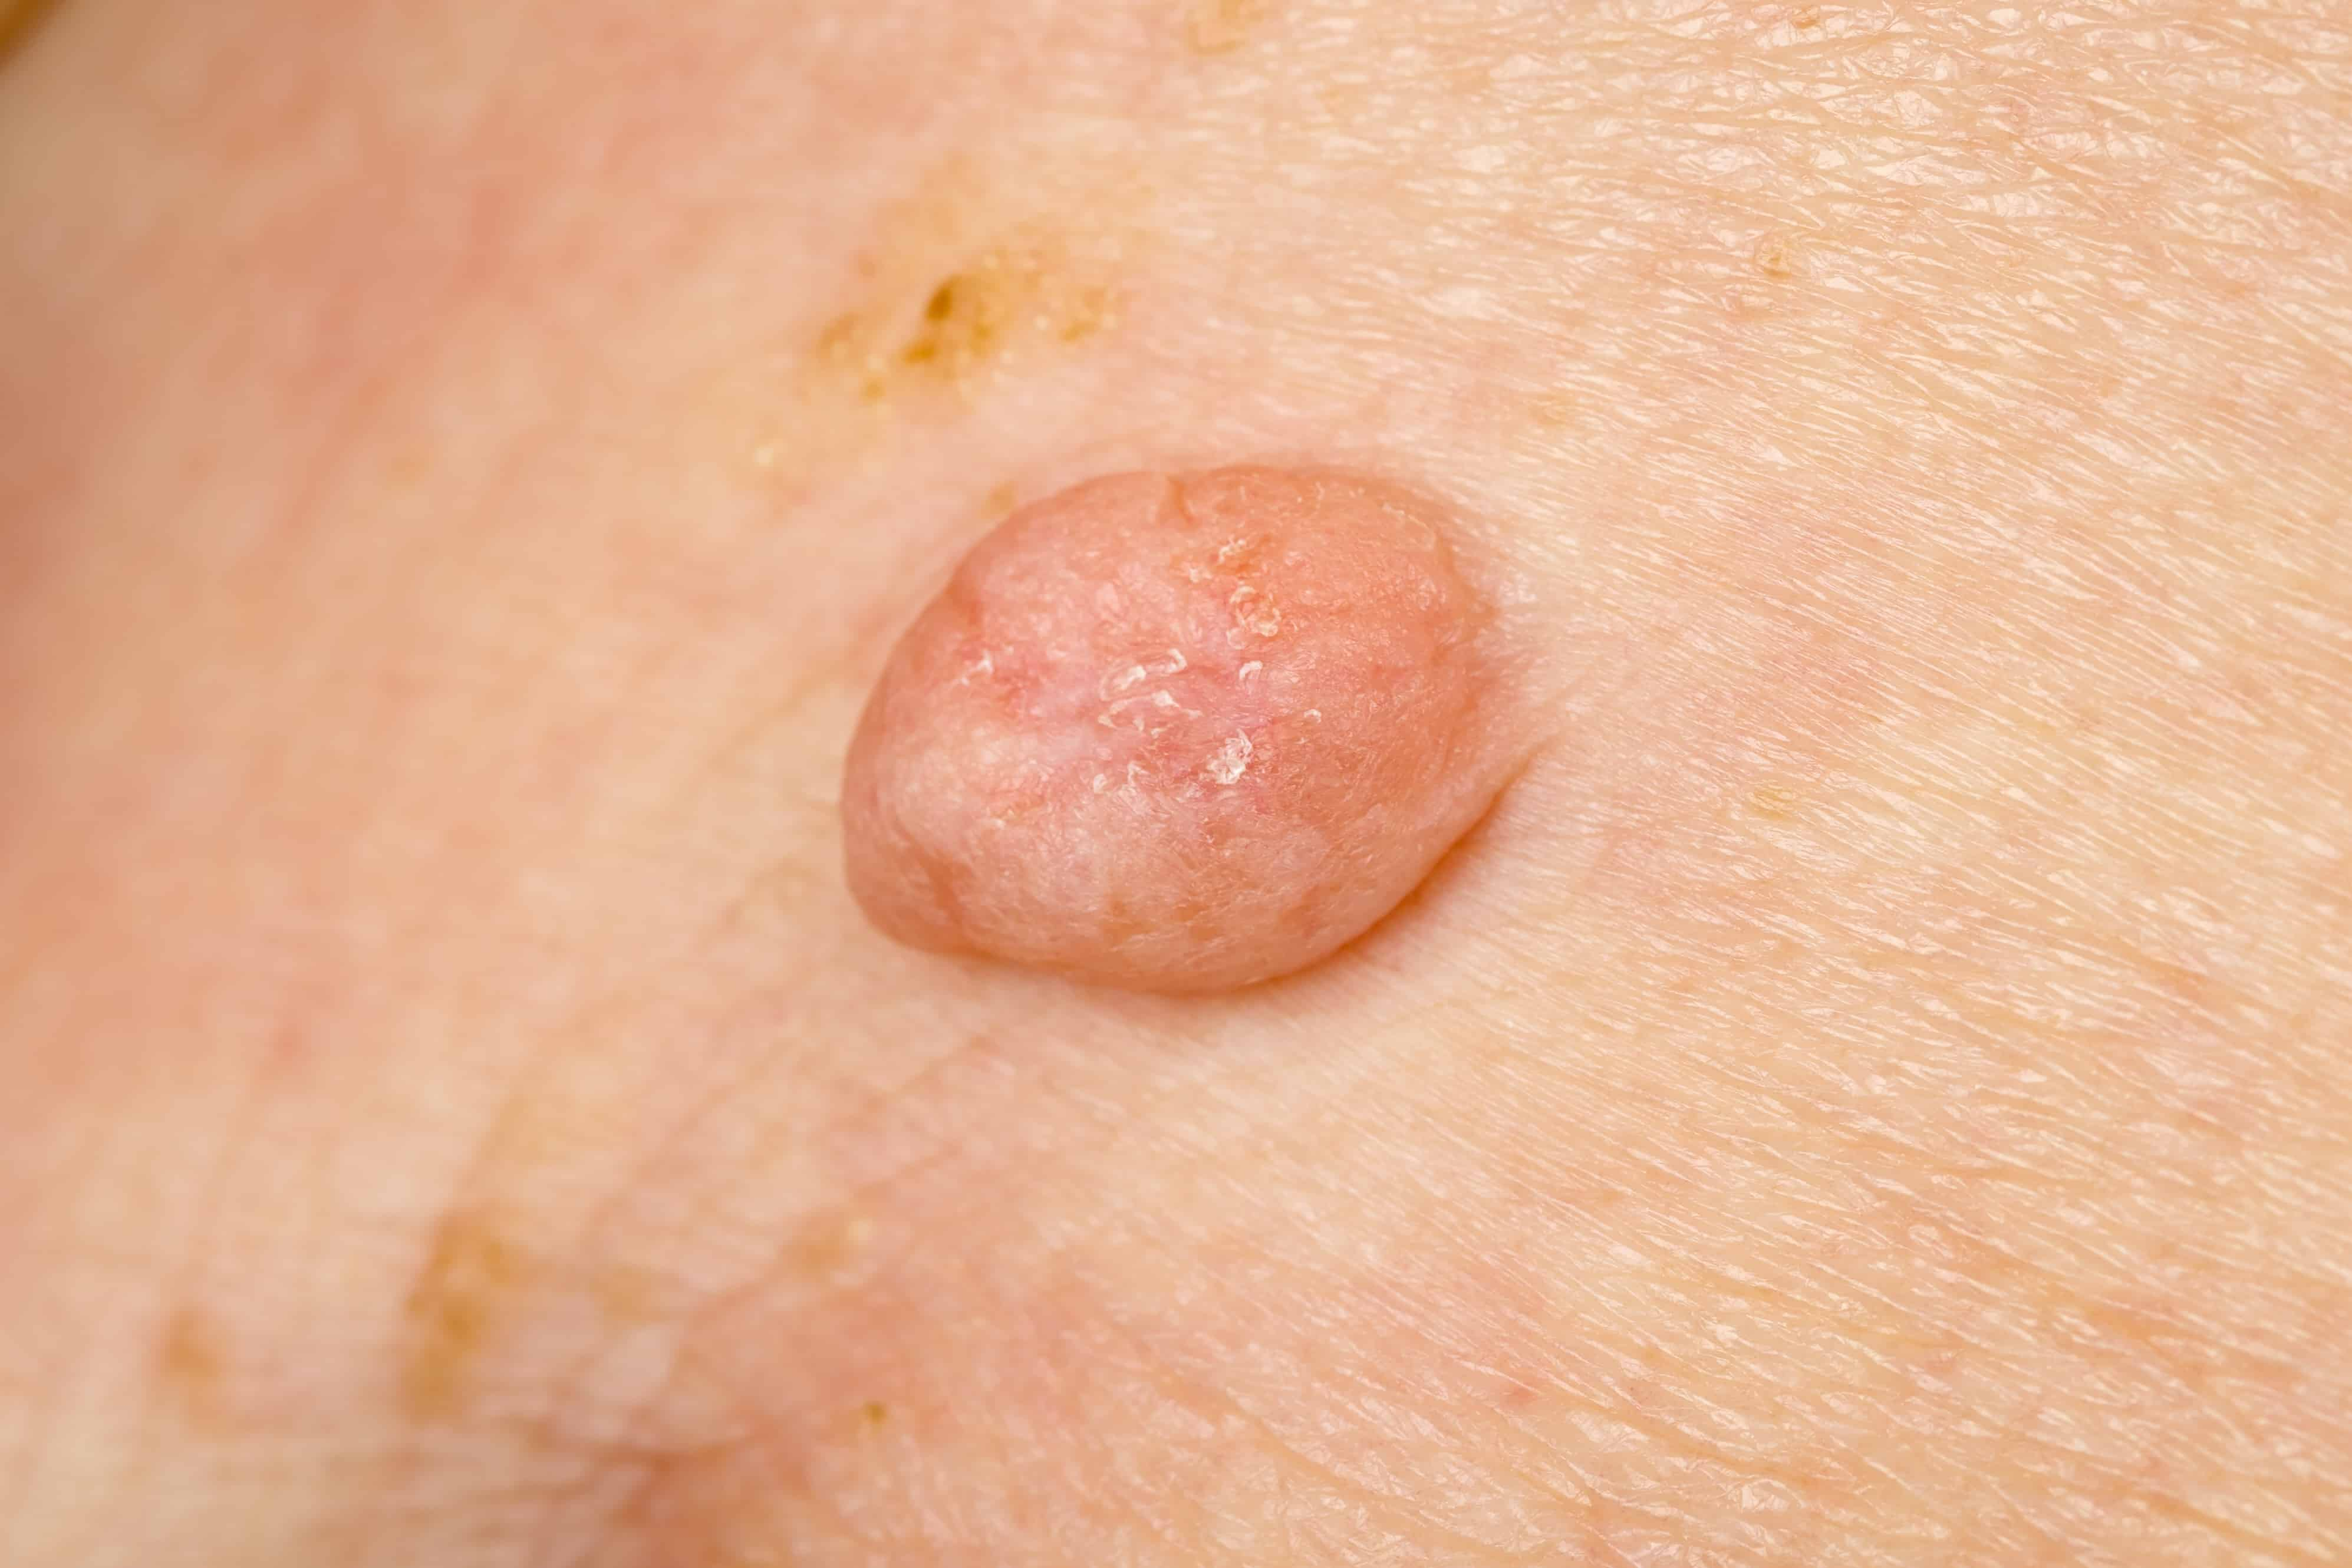 what to do about genital warts